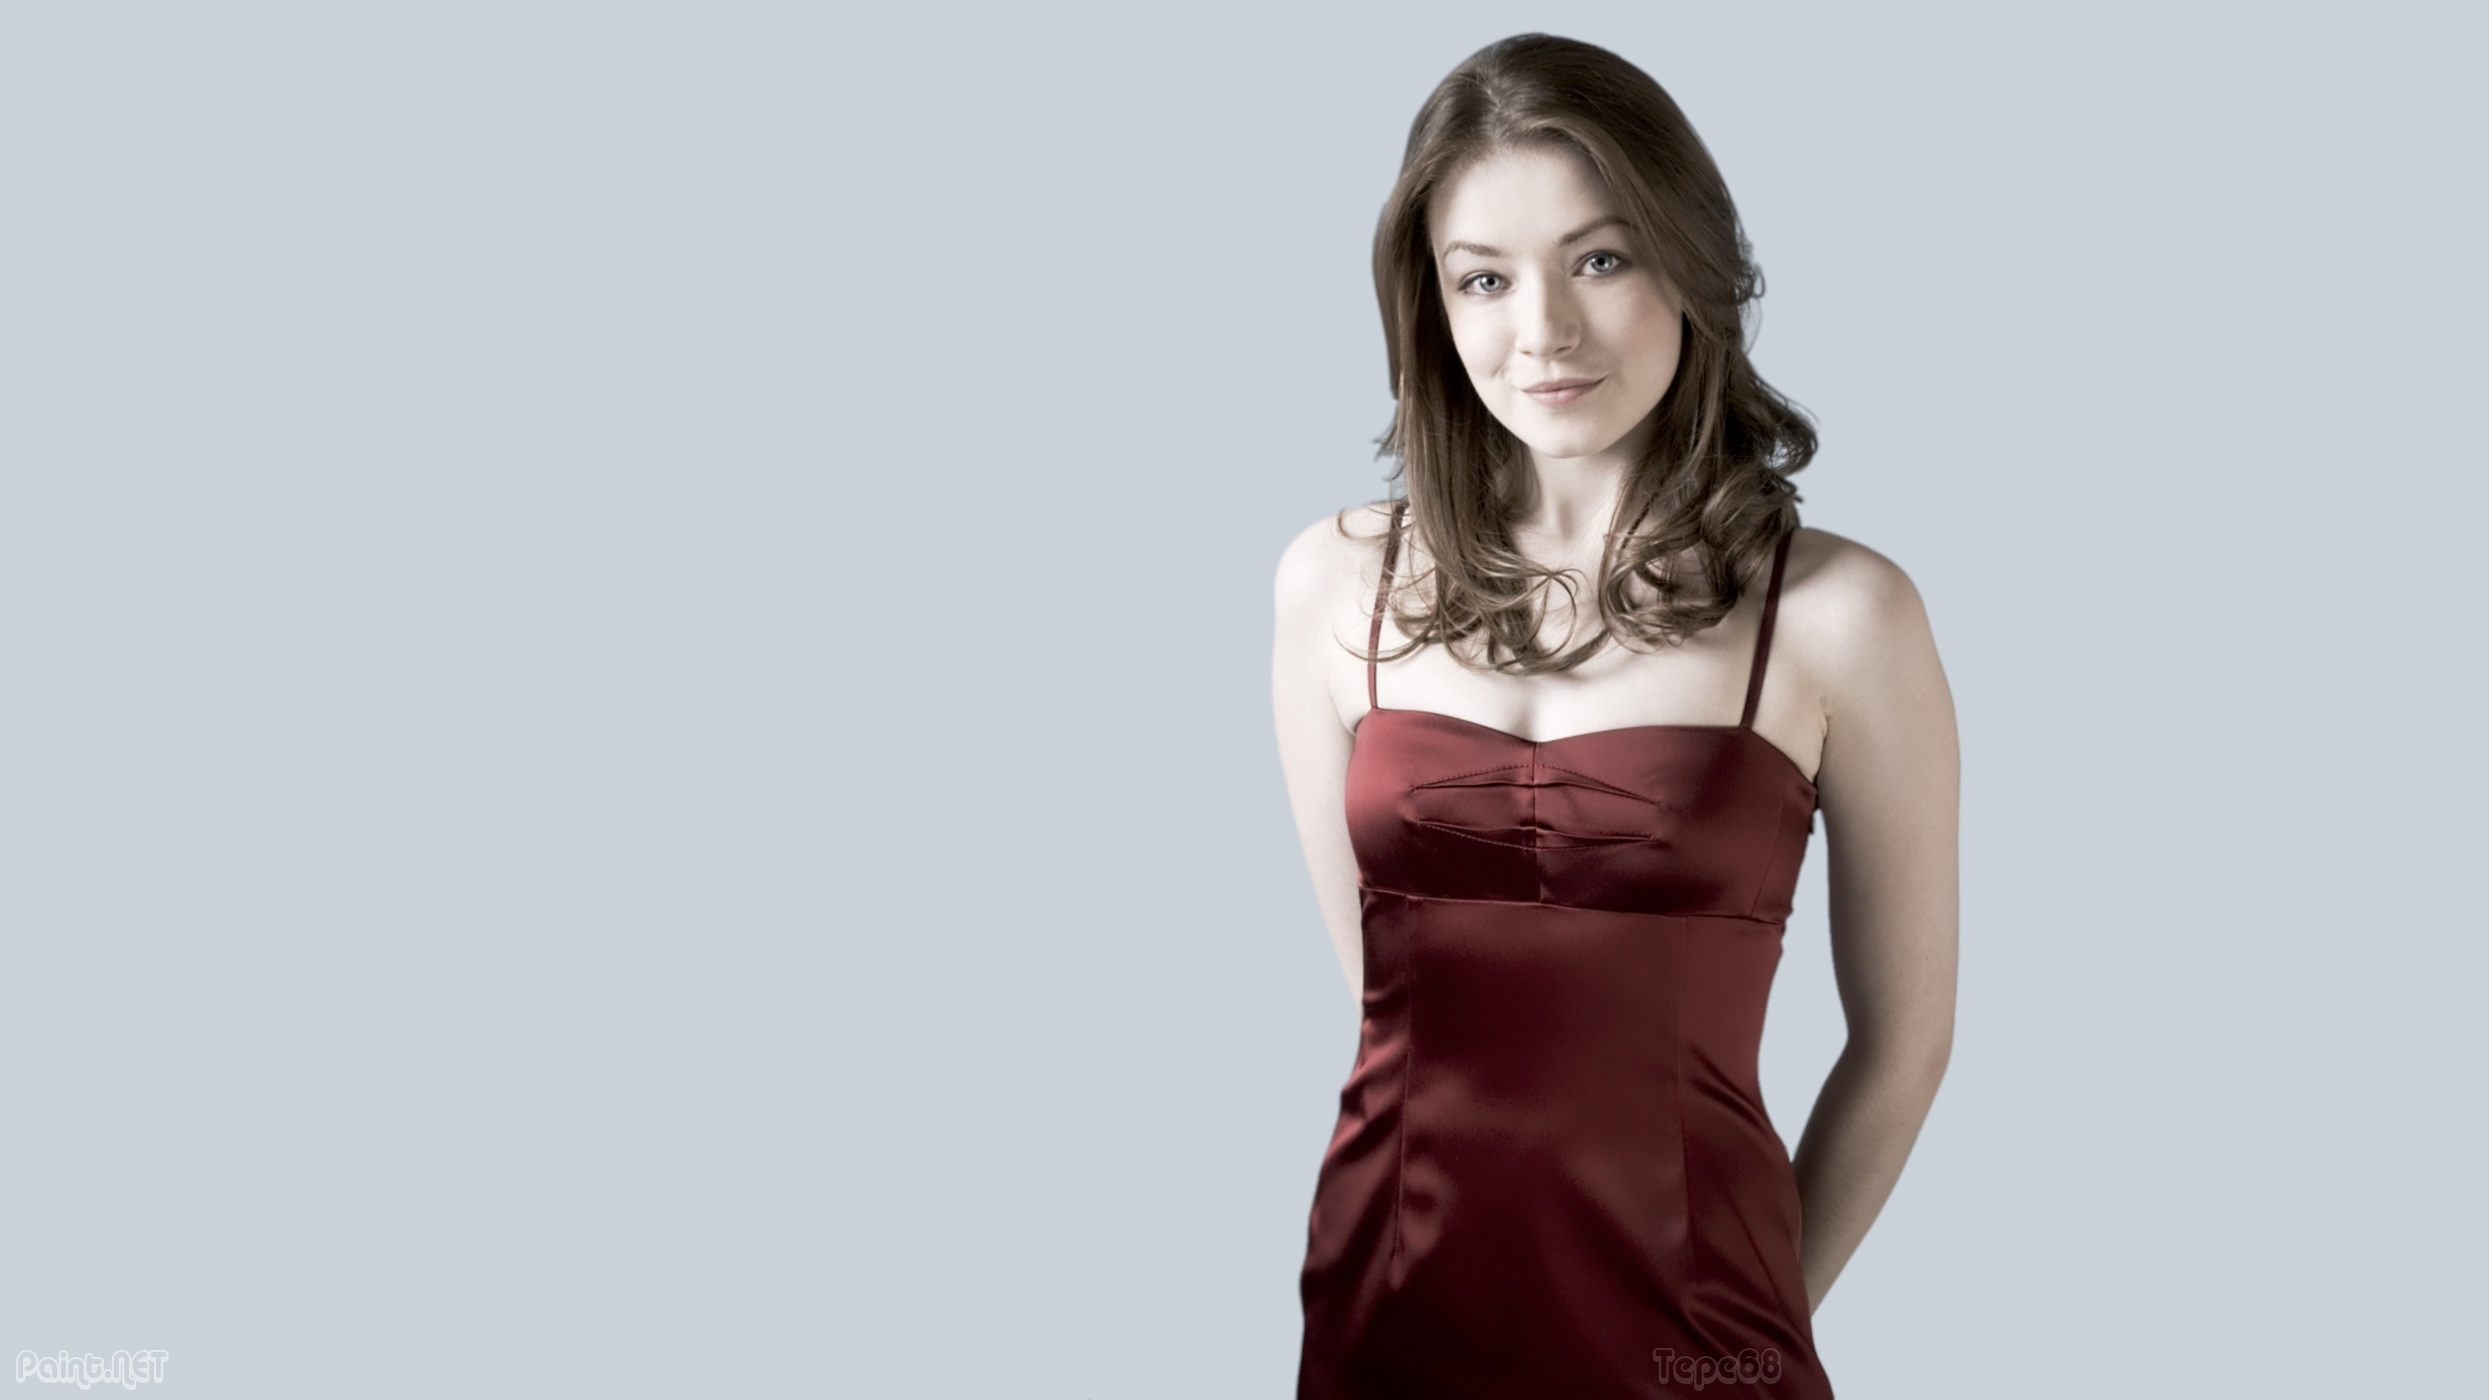 Sarah Bolger Sexy Wallpapers